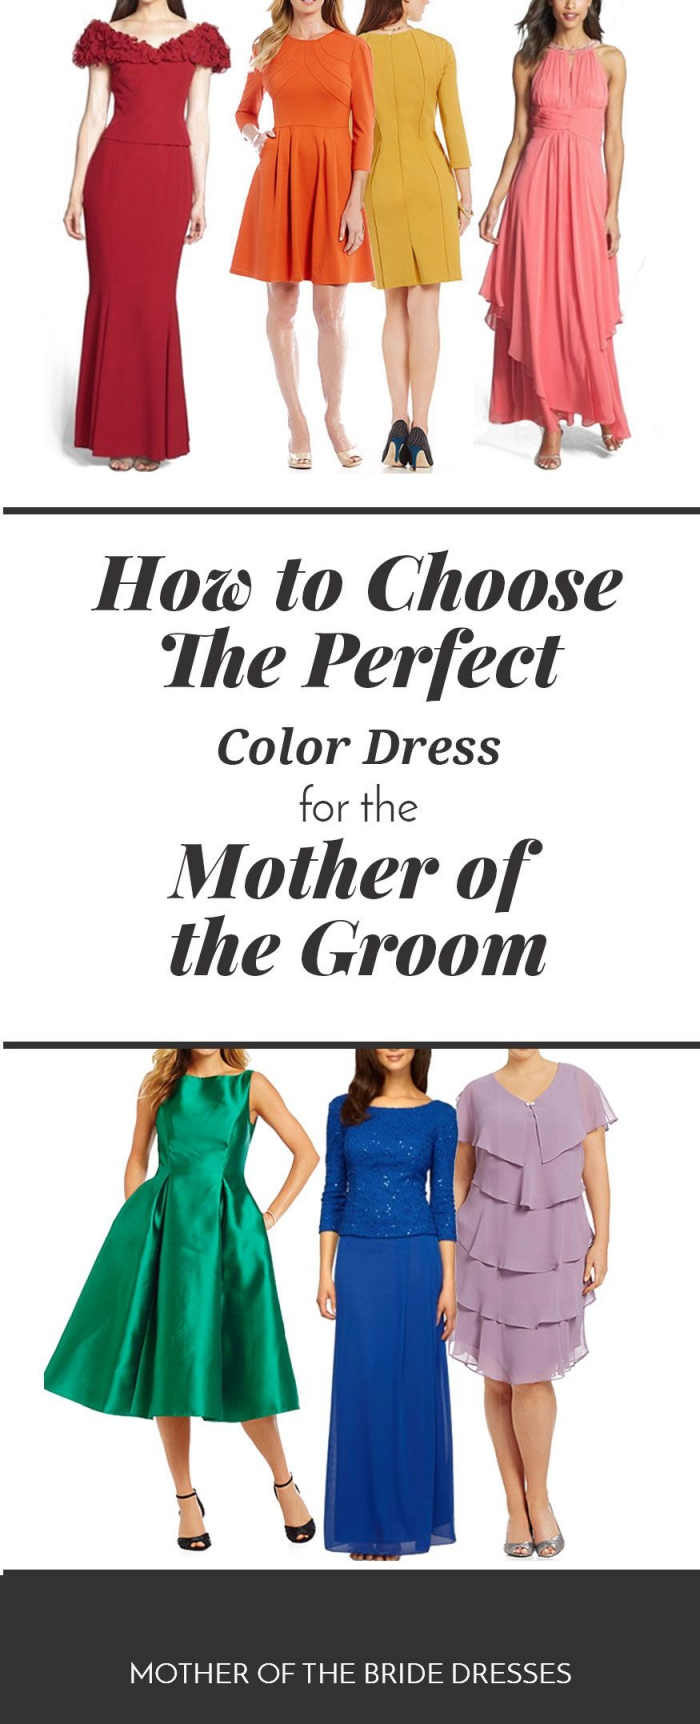 What Color Should The Mother Of The Groom Dress Be